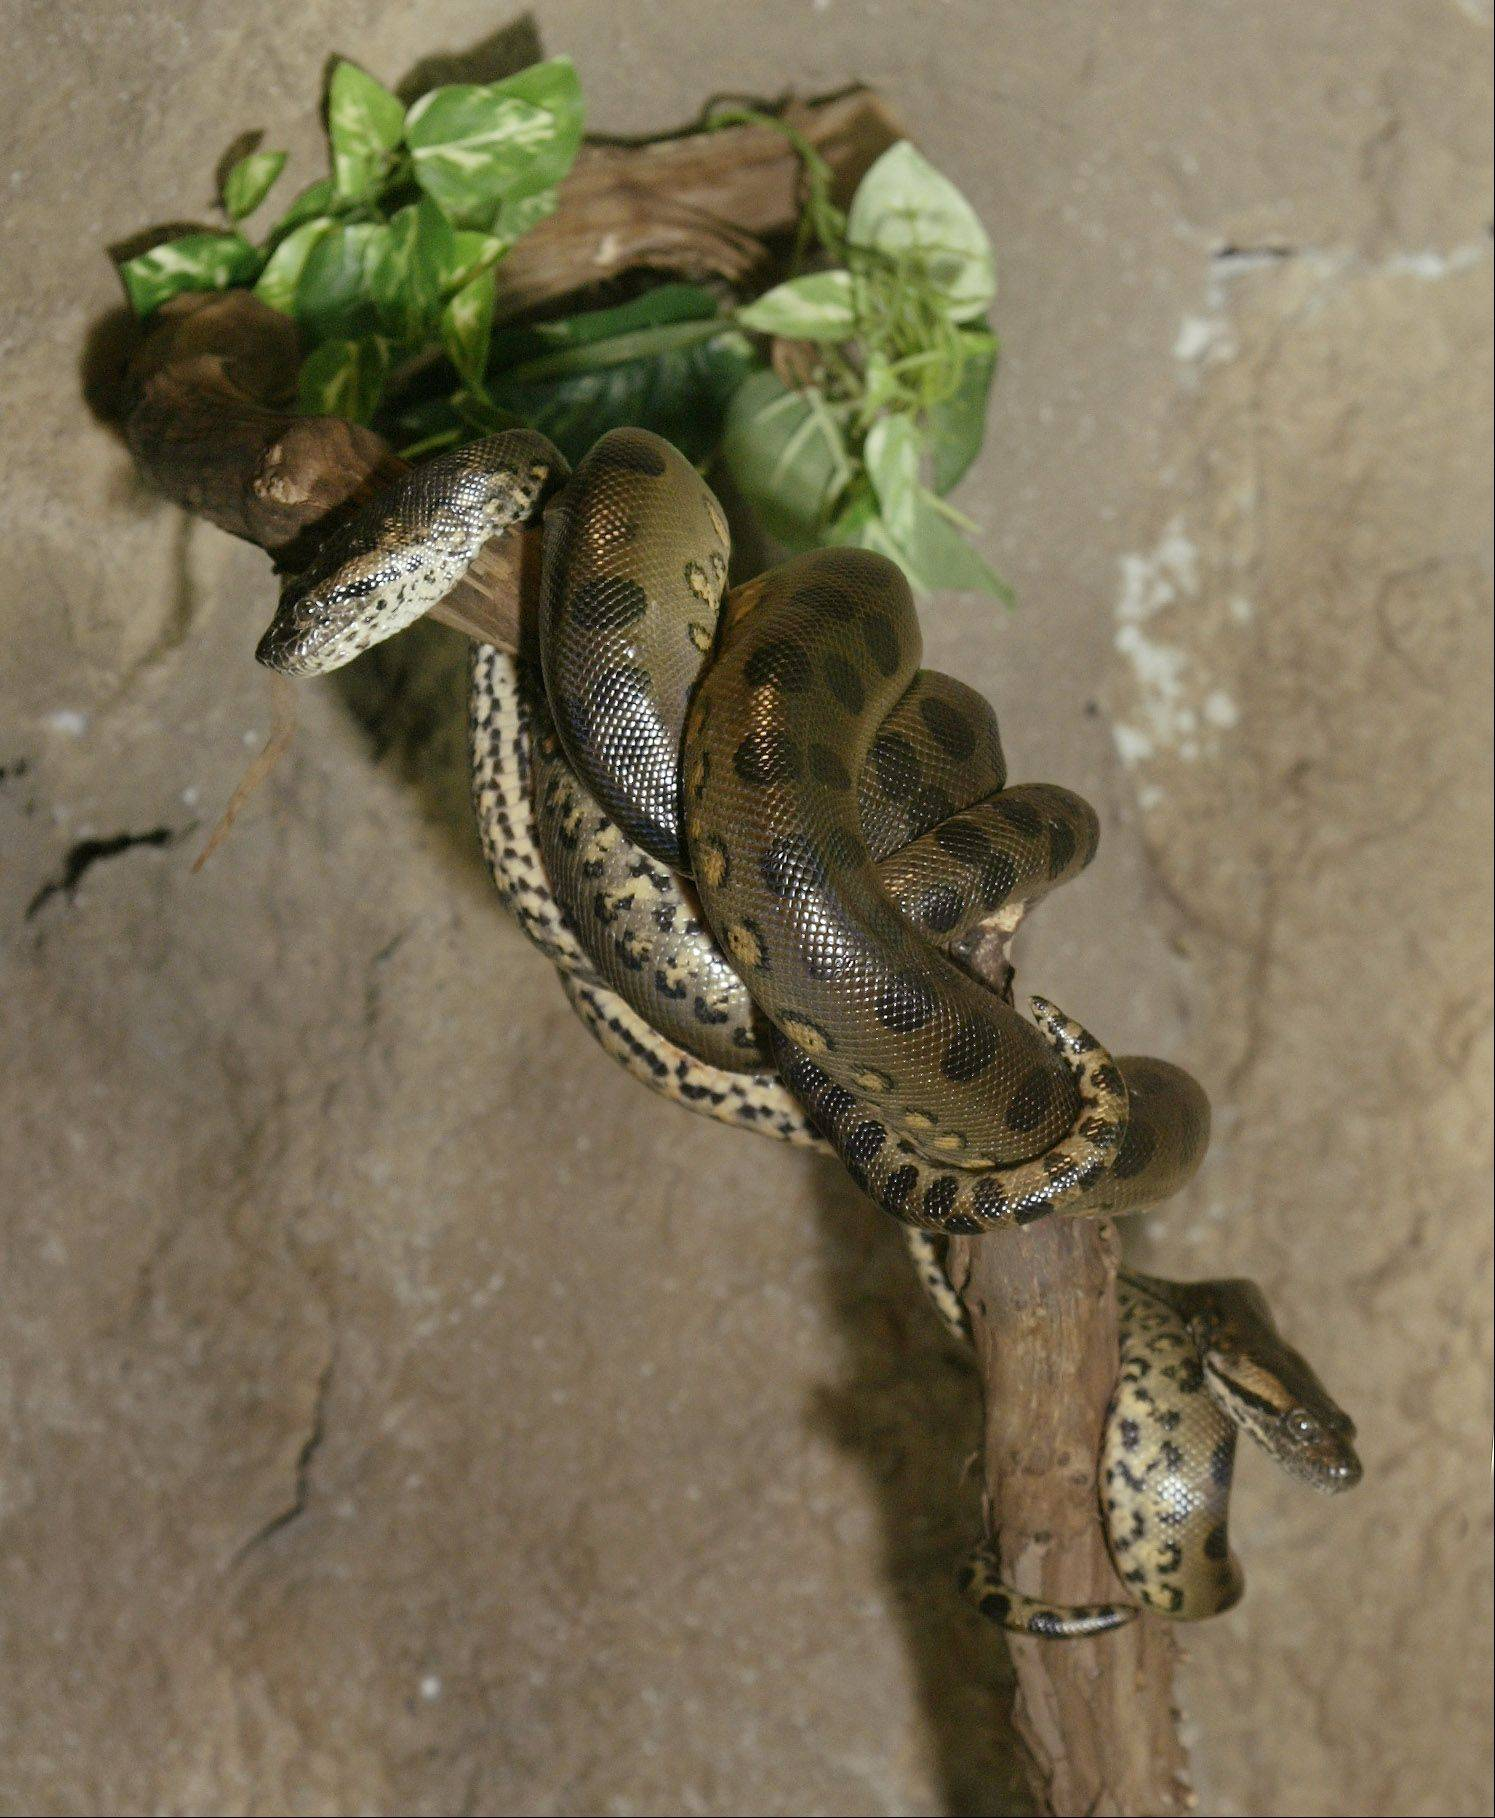 Bertha, the 250-pound Anaconda, gave birth to over 50 babies in 2004 at Serpent Safari at Gurnee Mills.